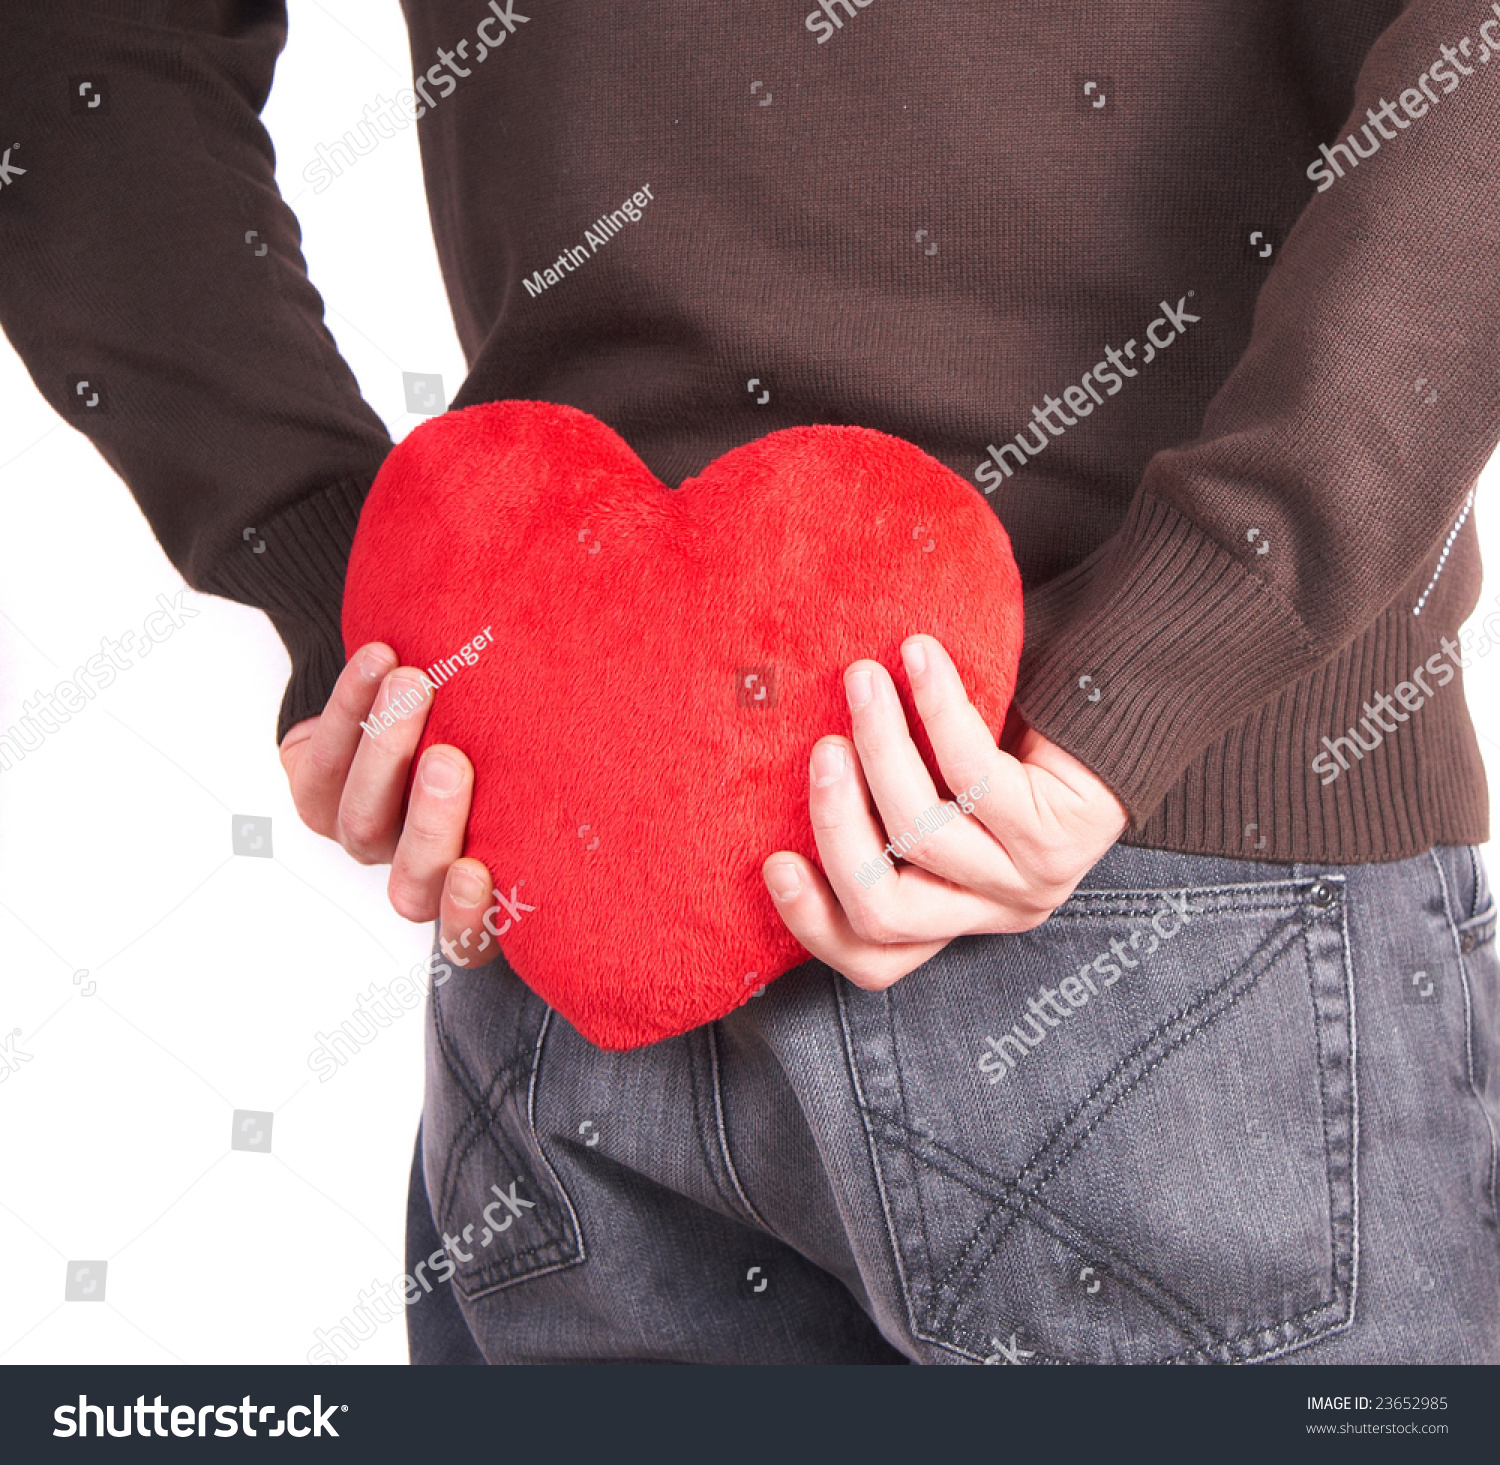 Man Shaped Pillow Young Man Holds Heart Shaped Pillow Stock Photo 23652985